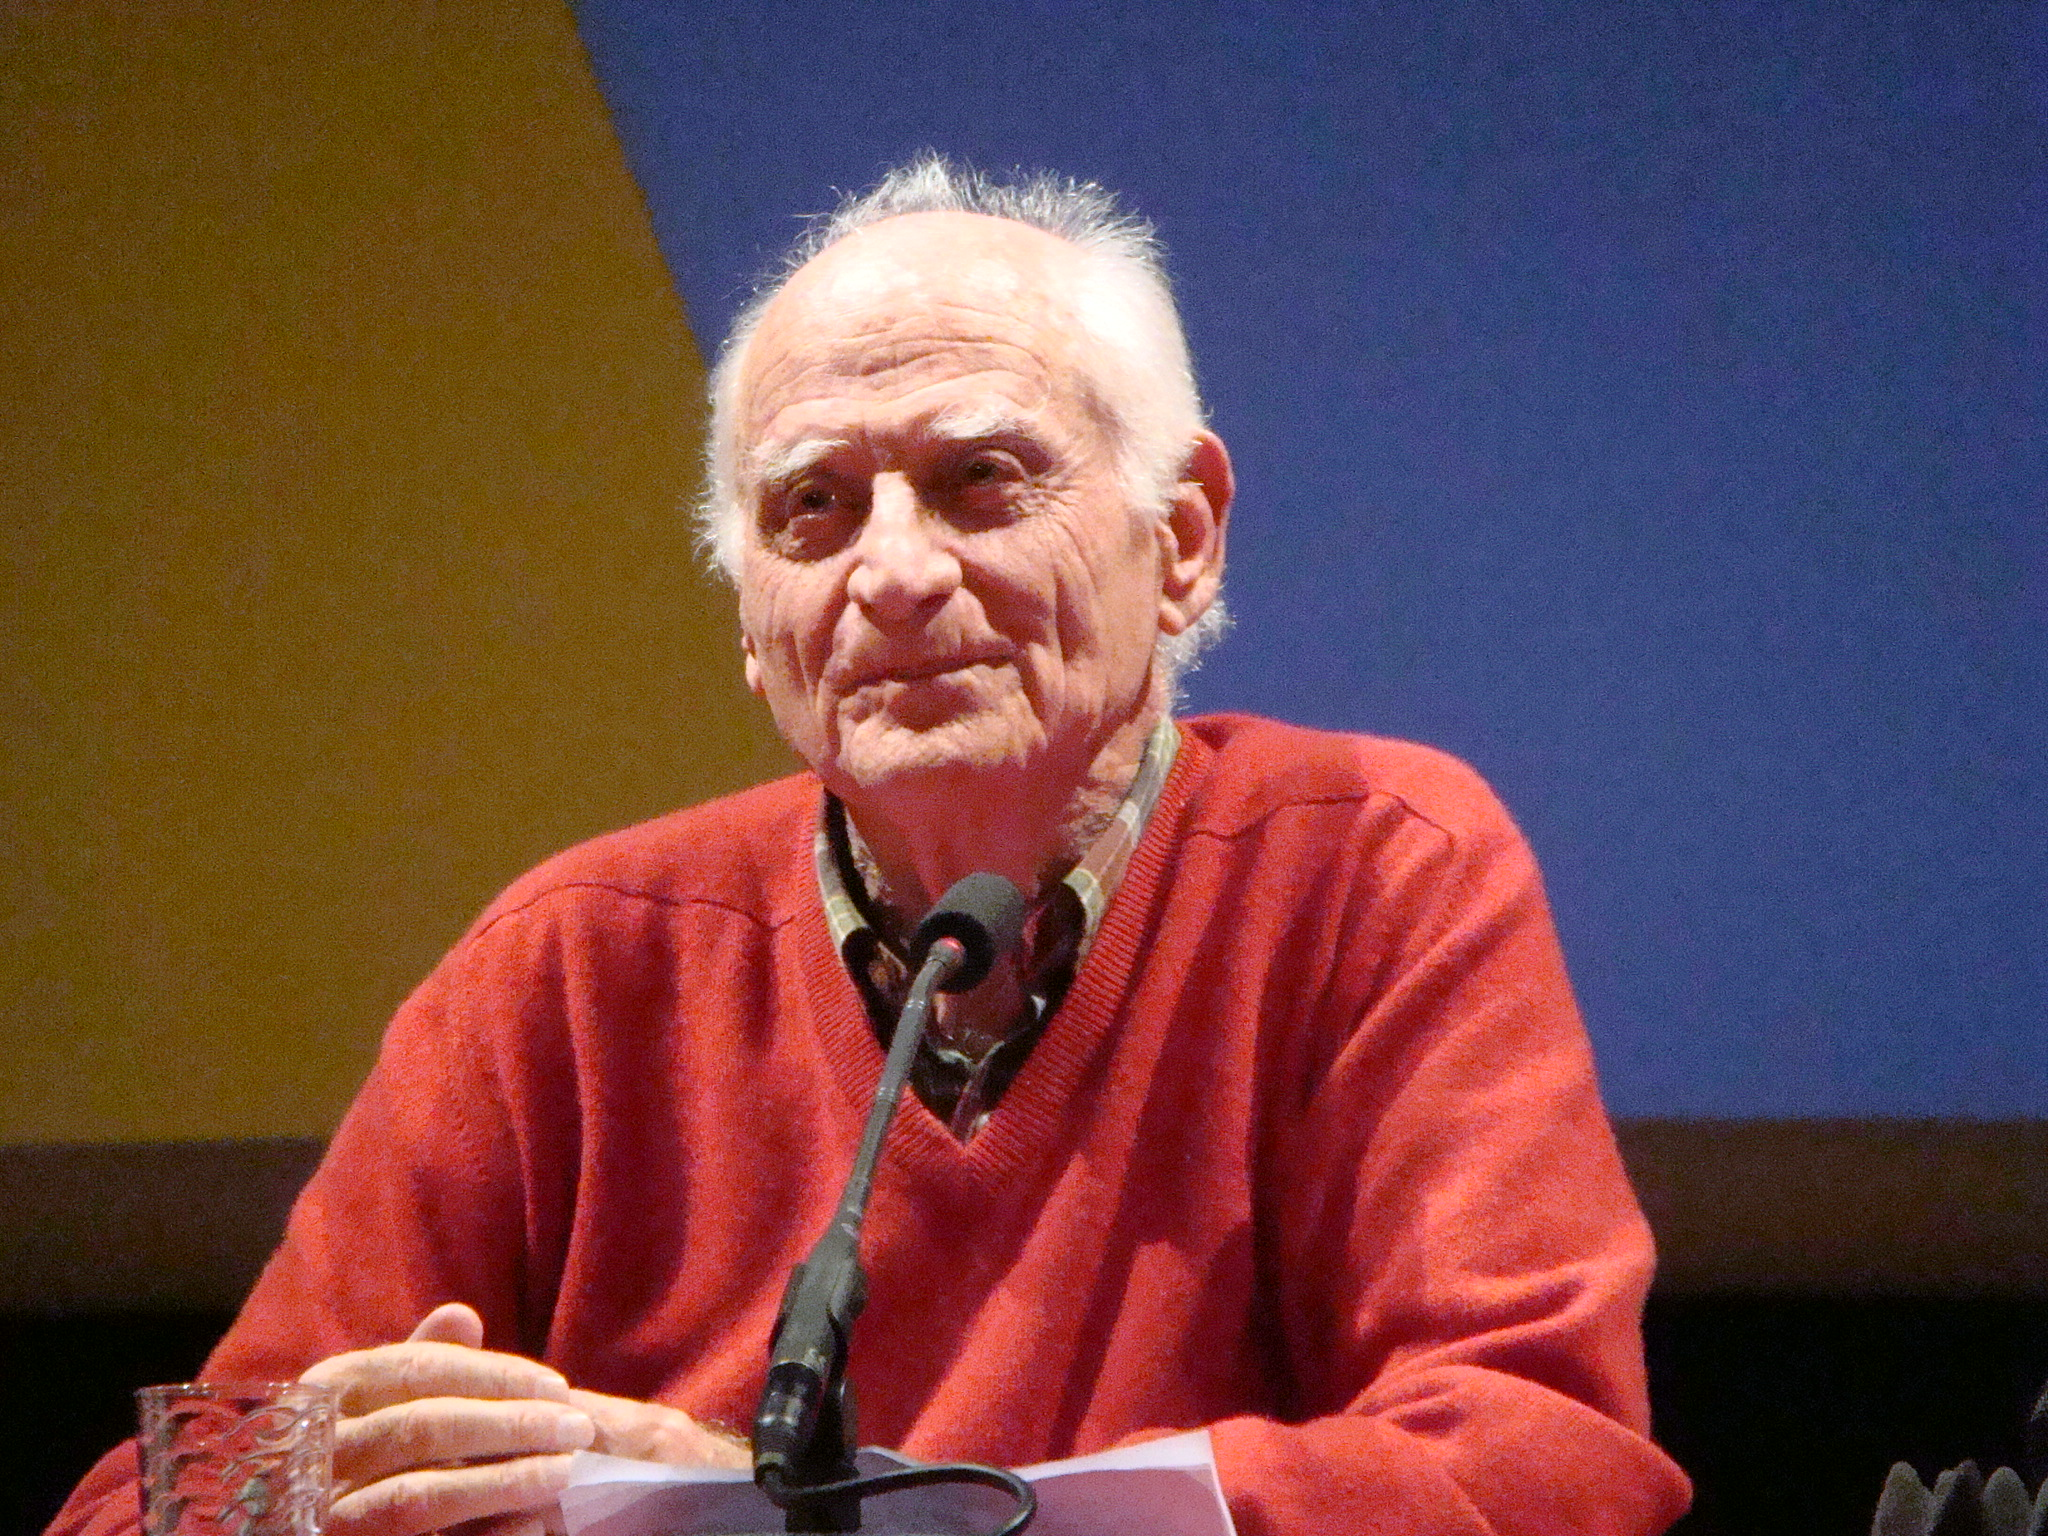 Michel Serres in [[Rennes]], February 2011